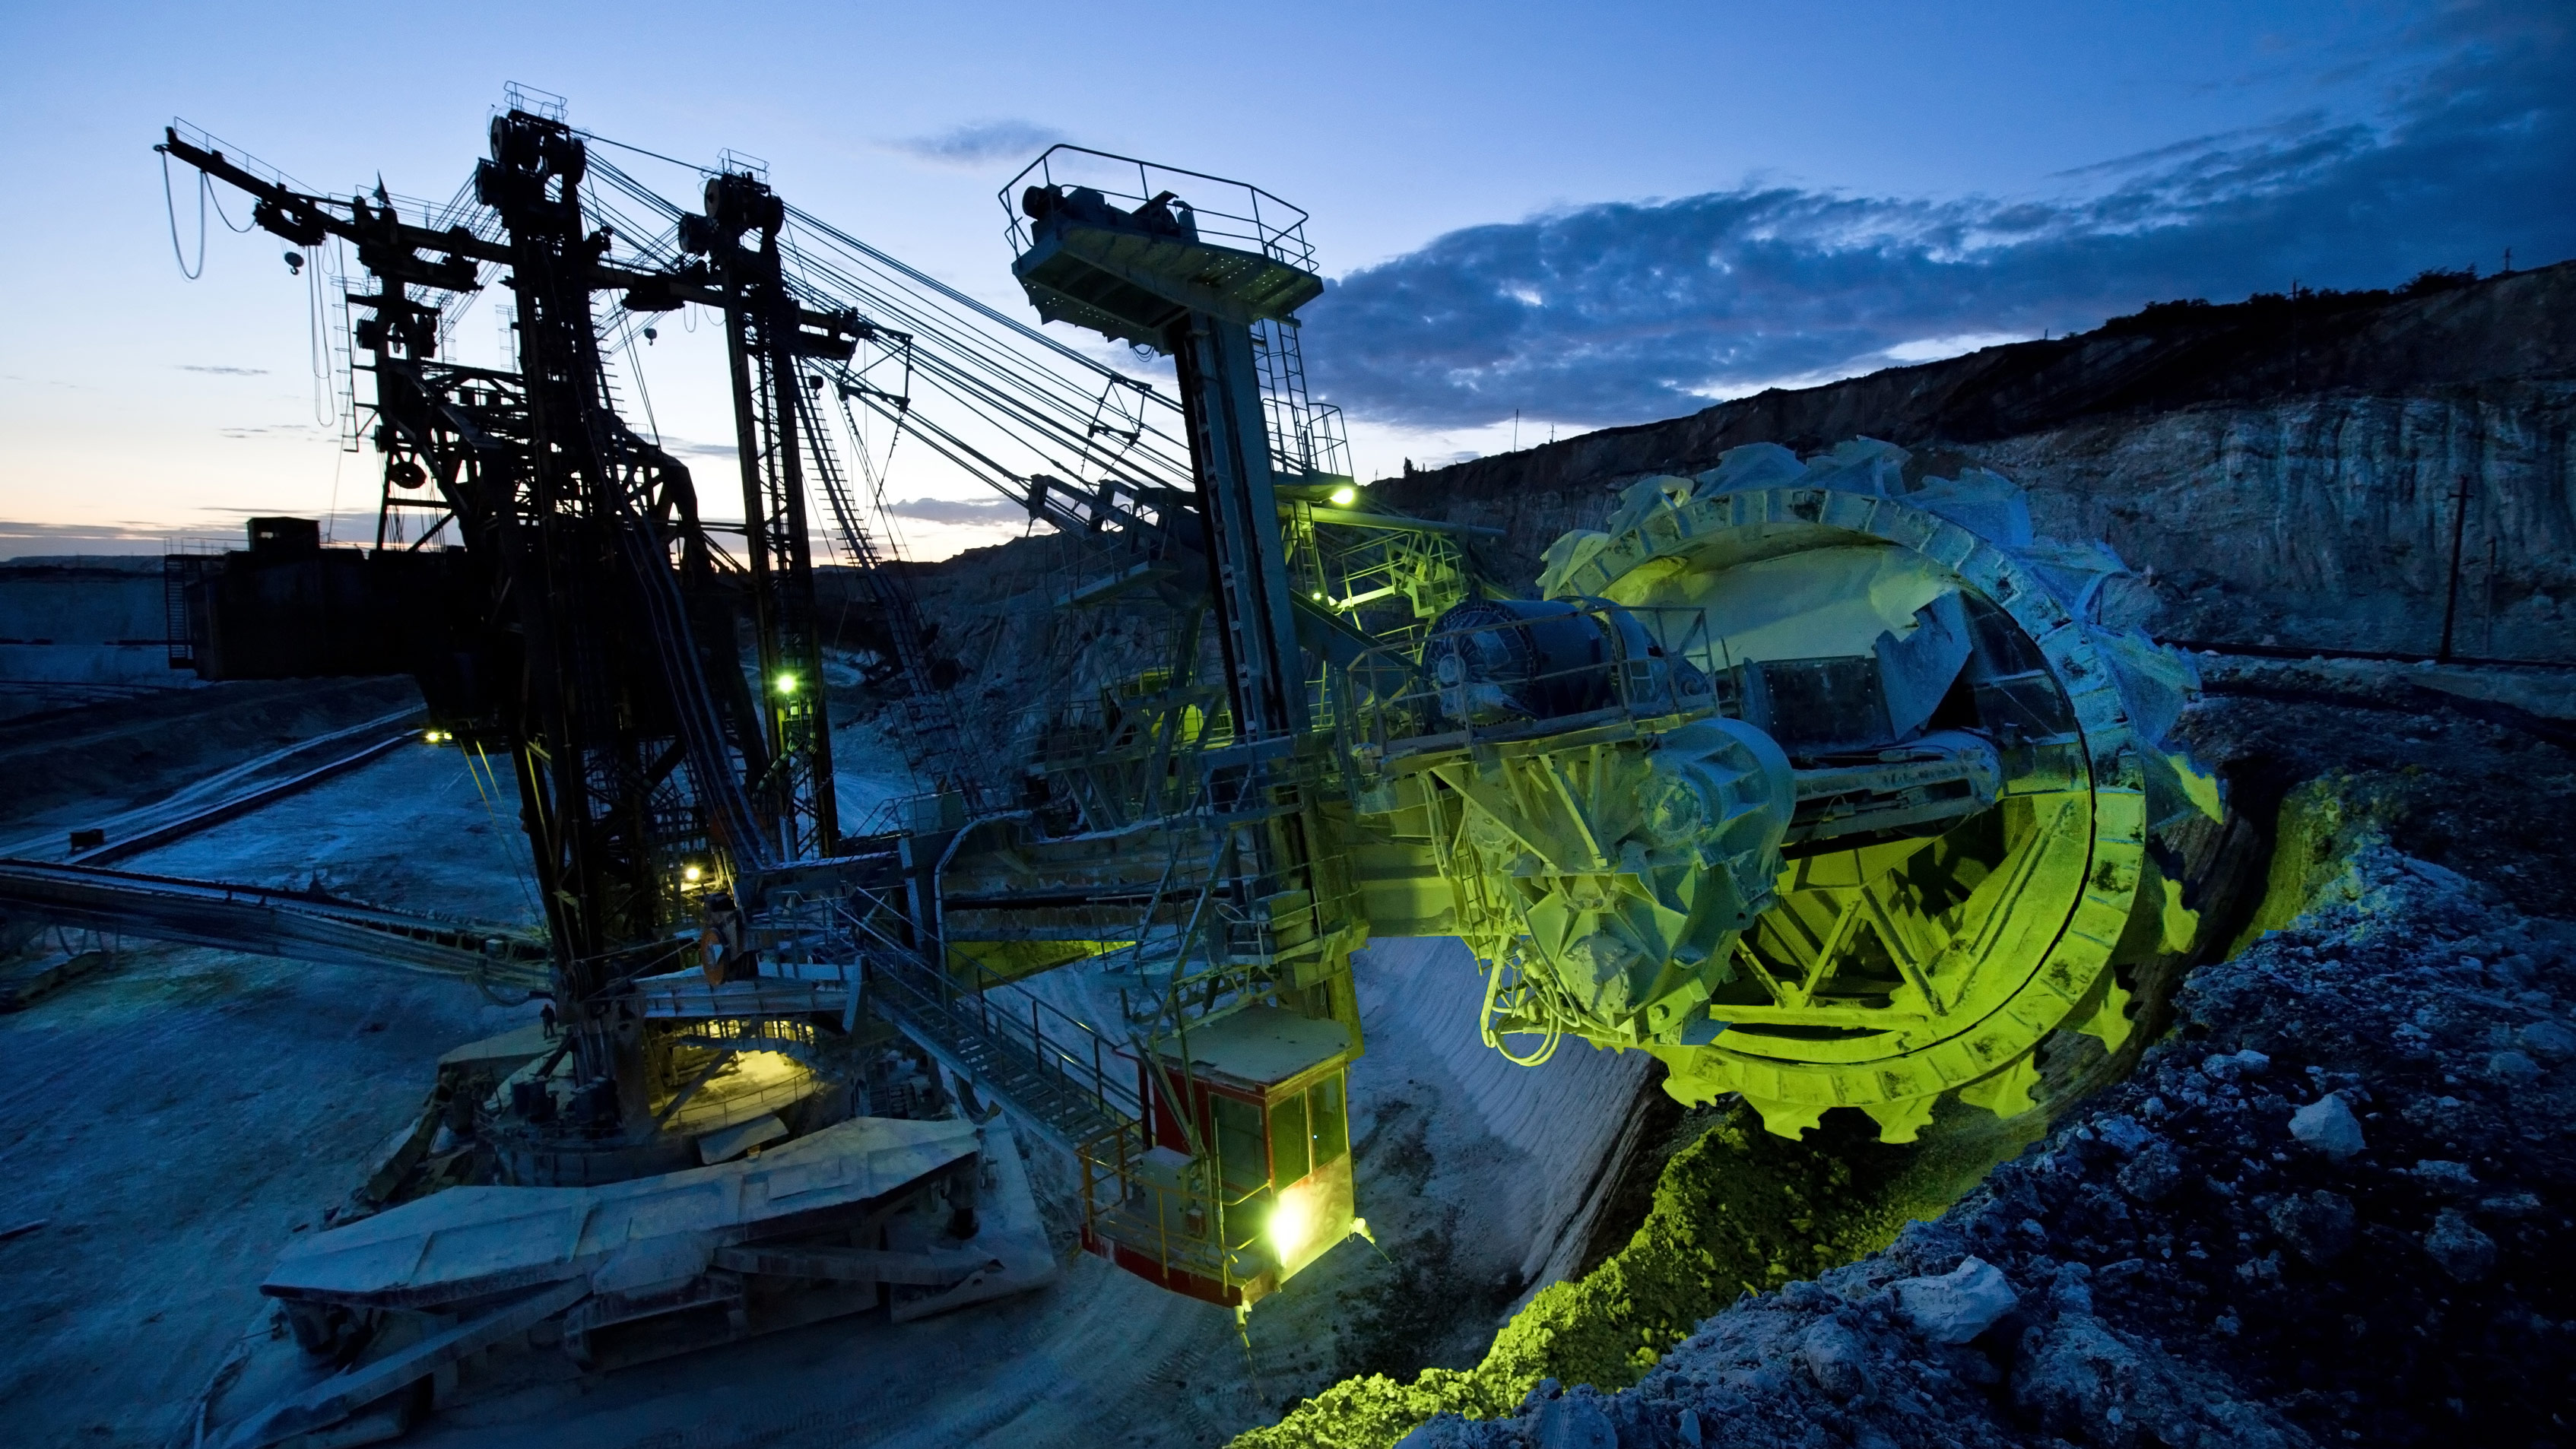 Halyk finance frontier mining and materials